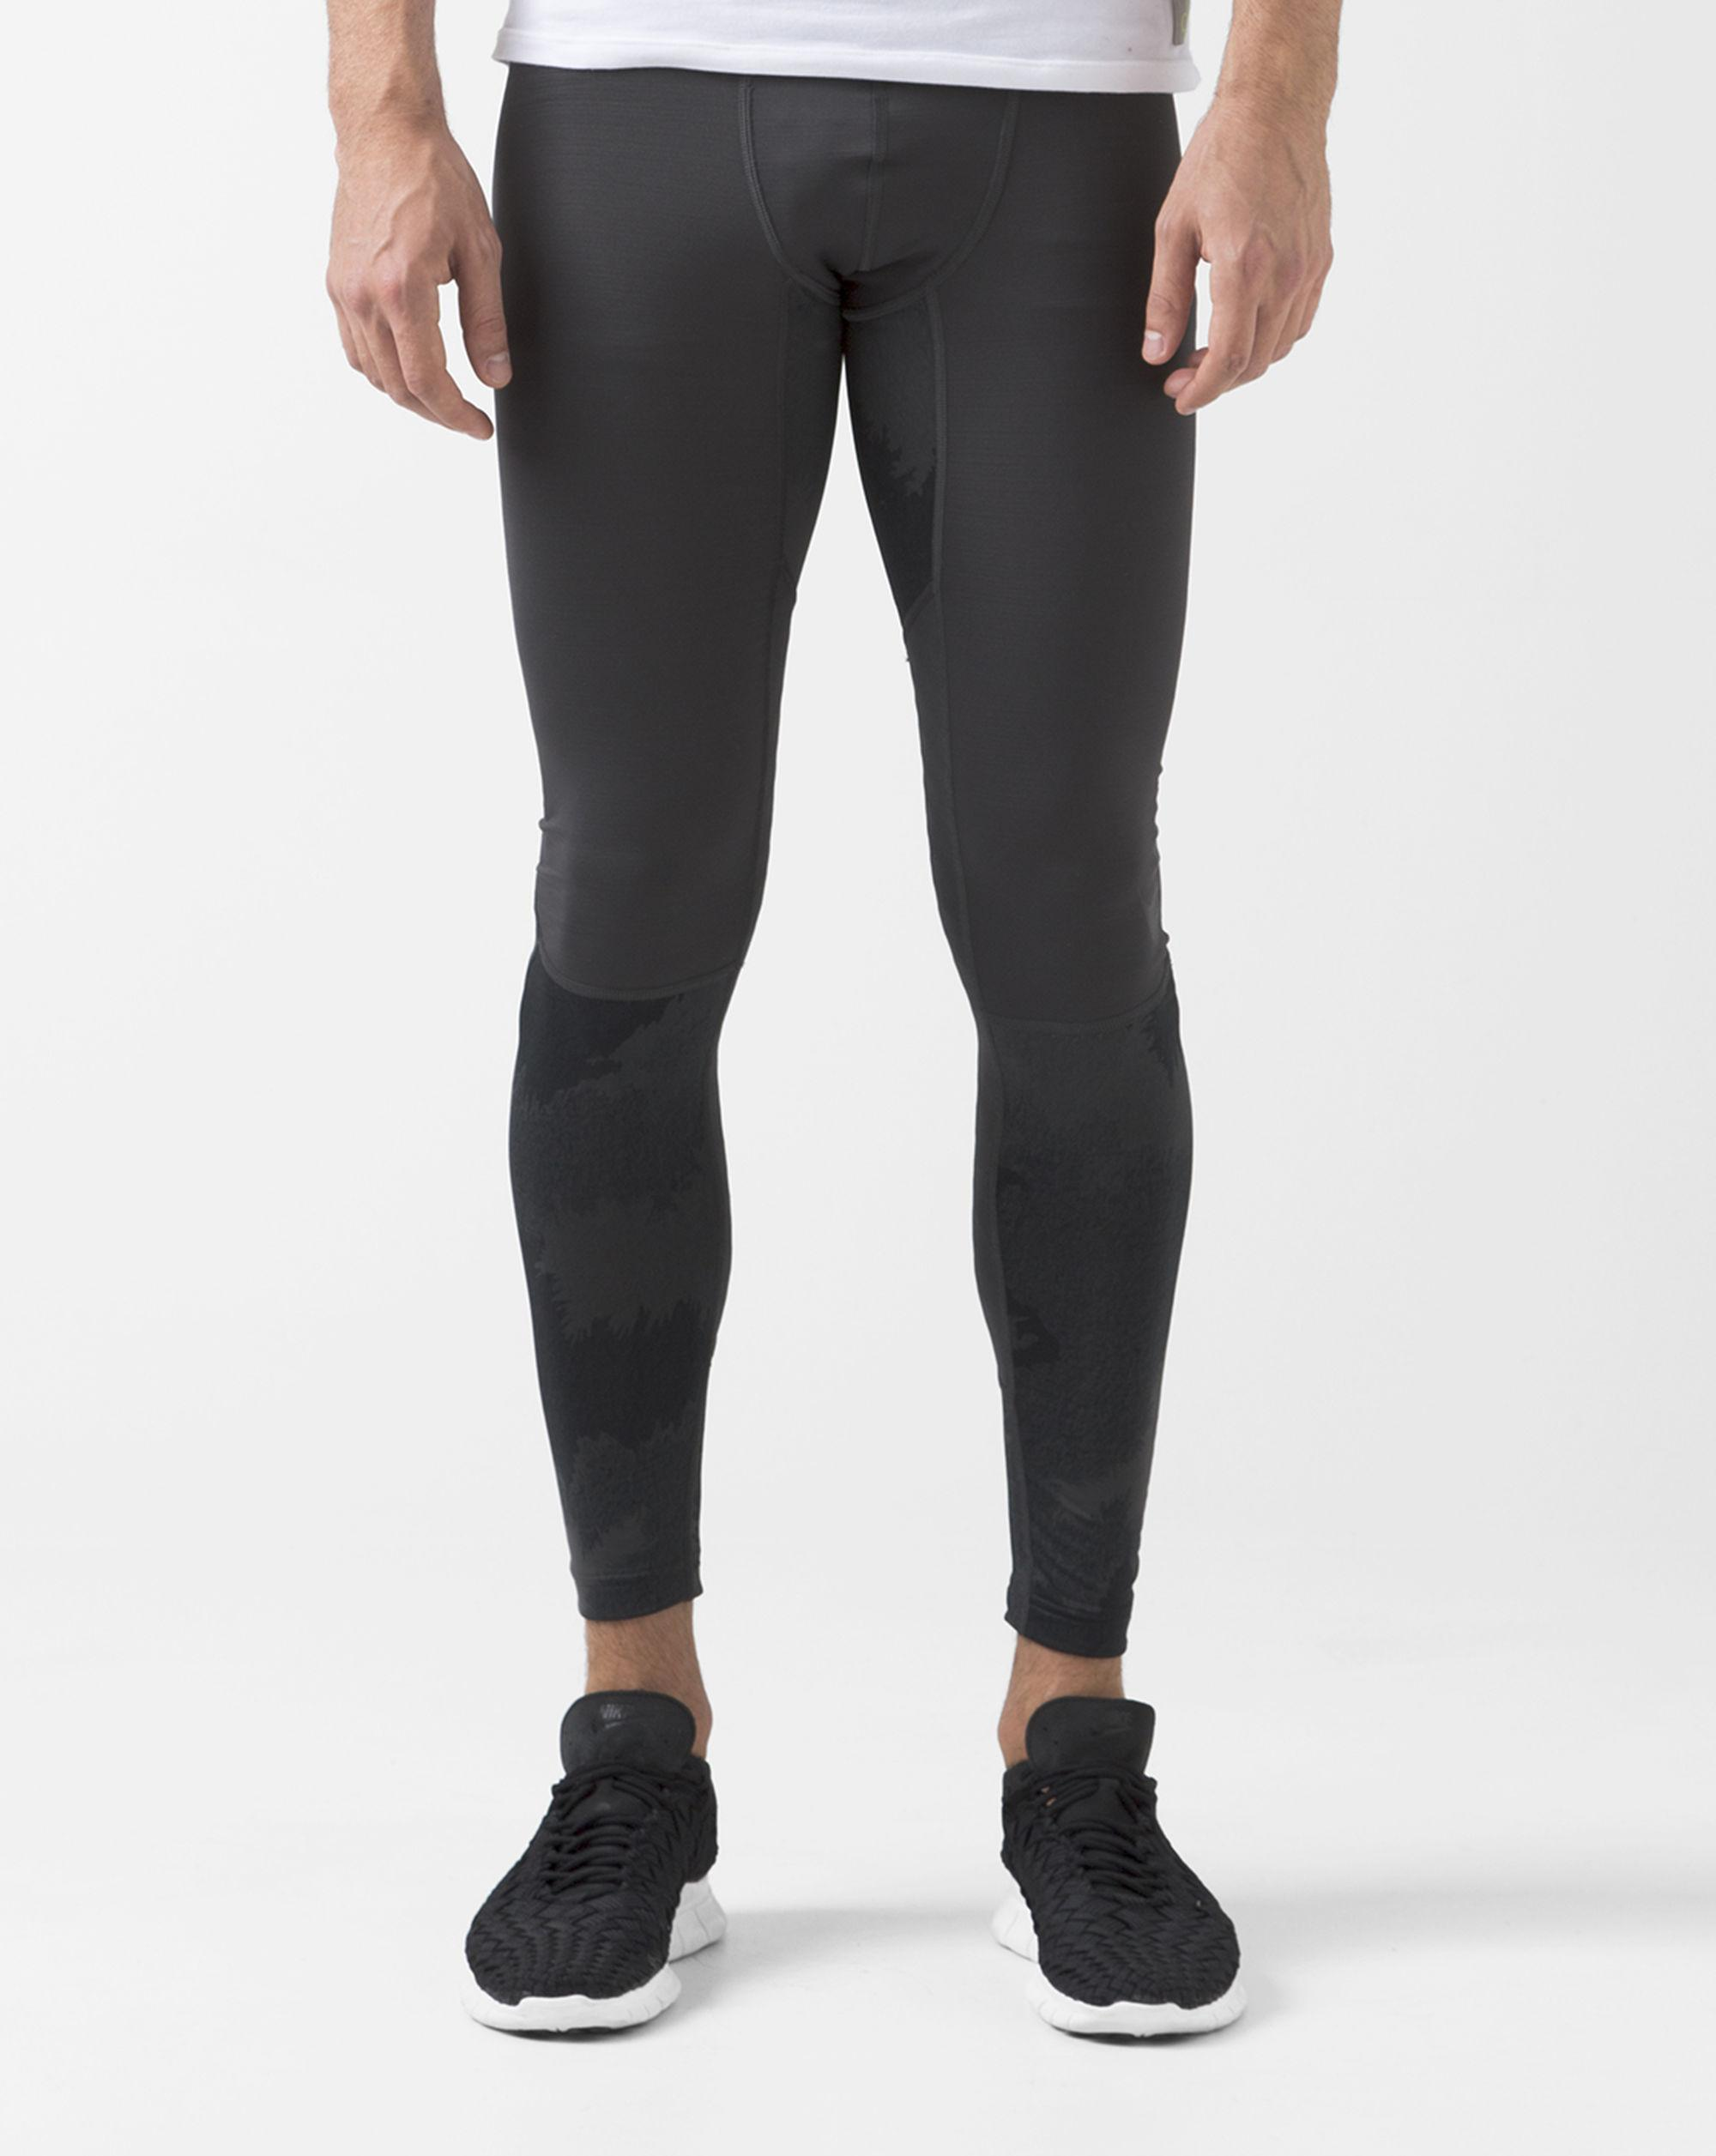 Grey Running Tights. Look for the cheap grey running tights with durable and practical quality from DHgate Australia site. We provide a giant platform to help you find the best womens fitness tights keeping you satisfied. It is our pleasure to provide girls skinny tights on sale.